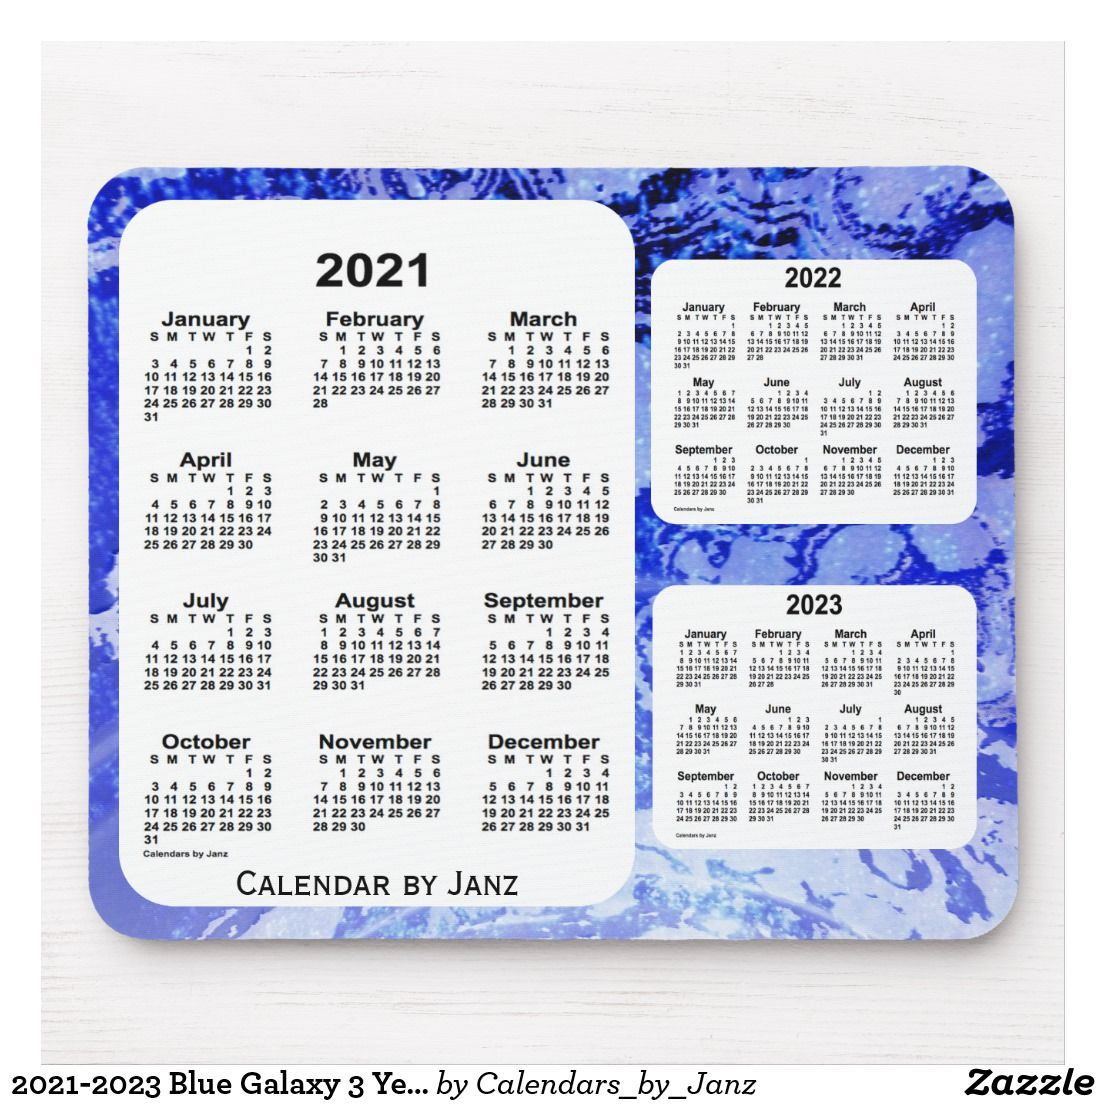 2021-2023 Blue Galaxy 3 Year Calendar By Janz Mouse Pad